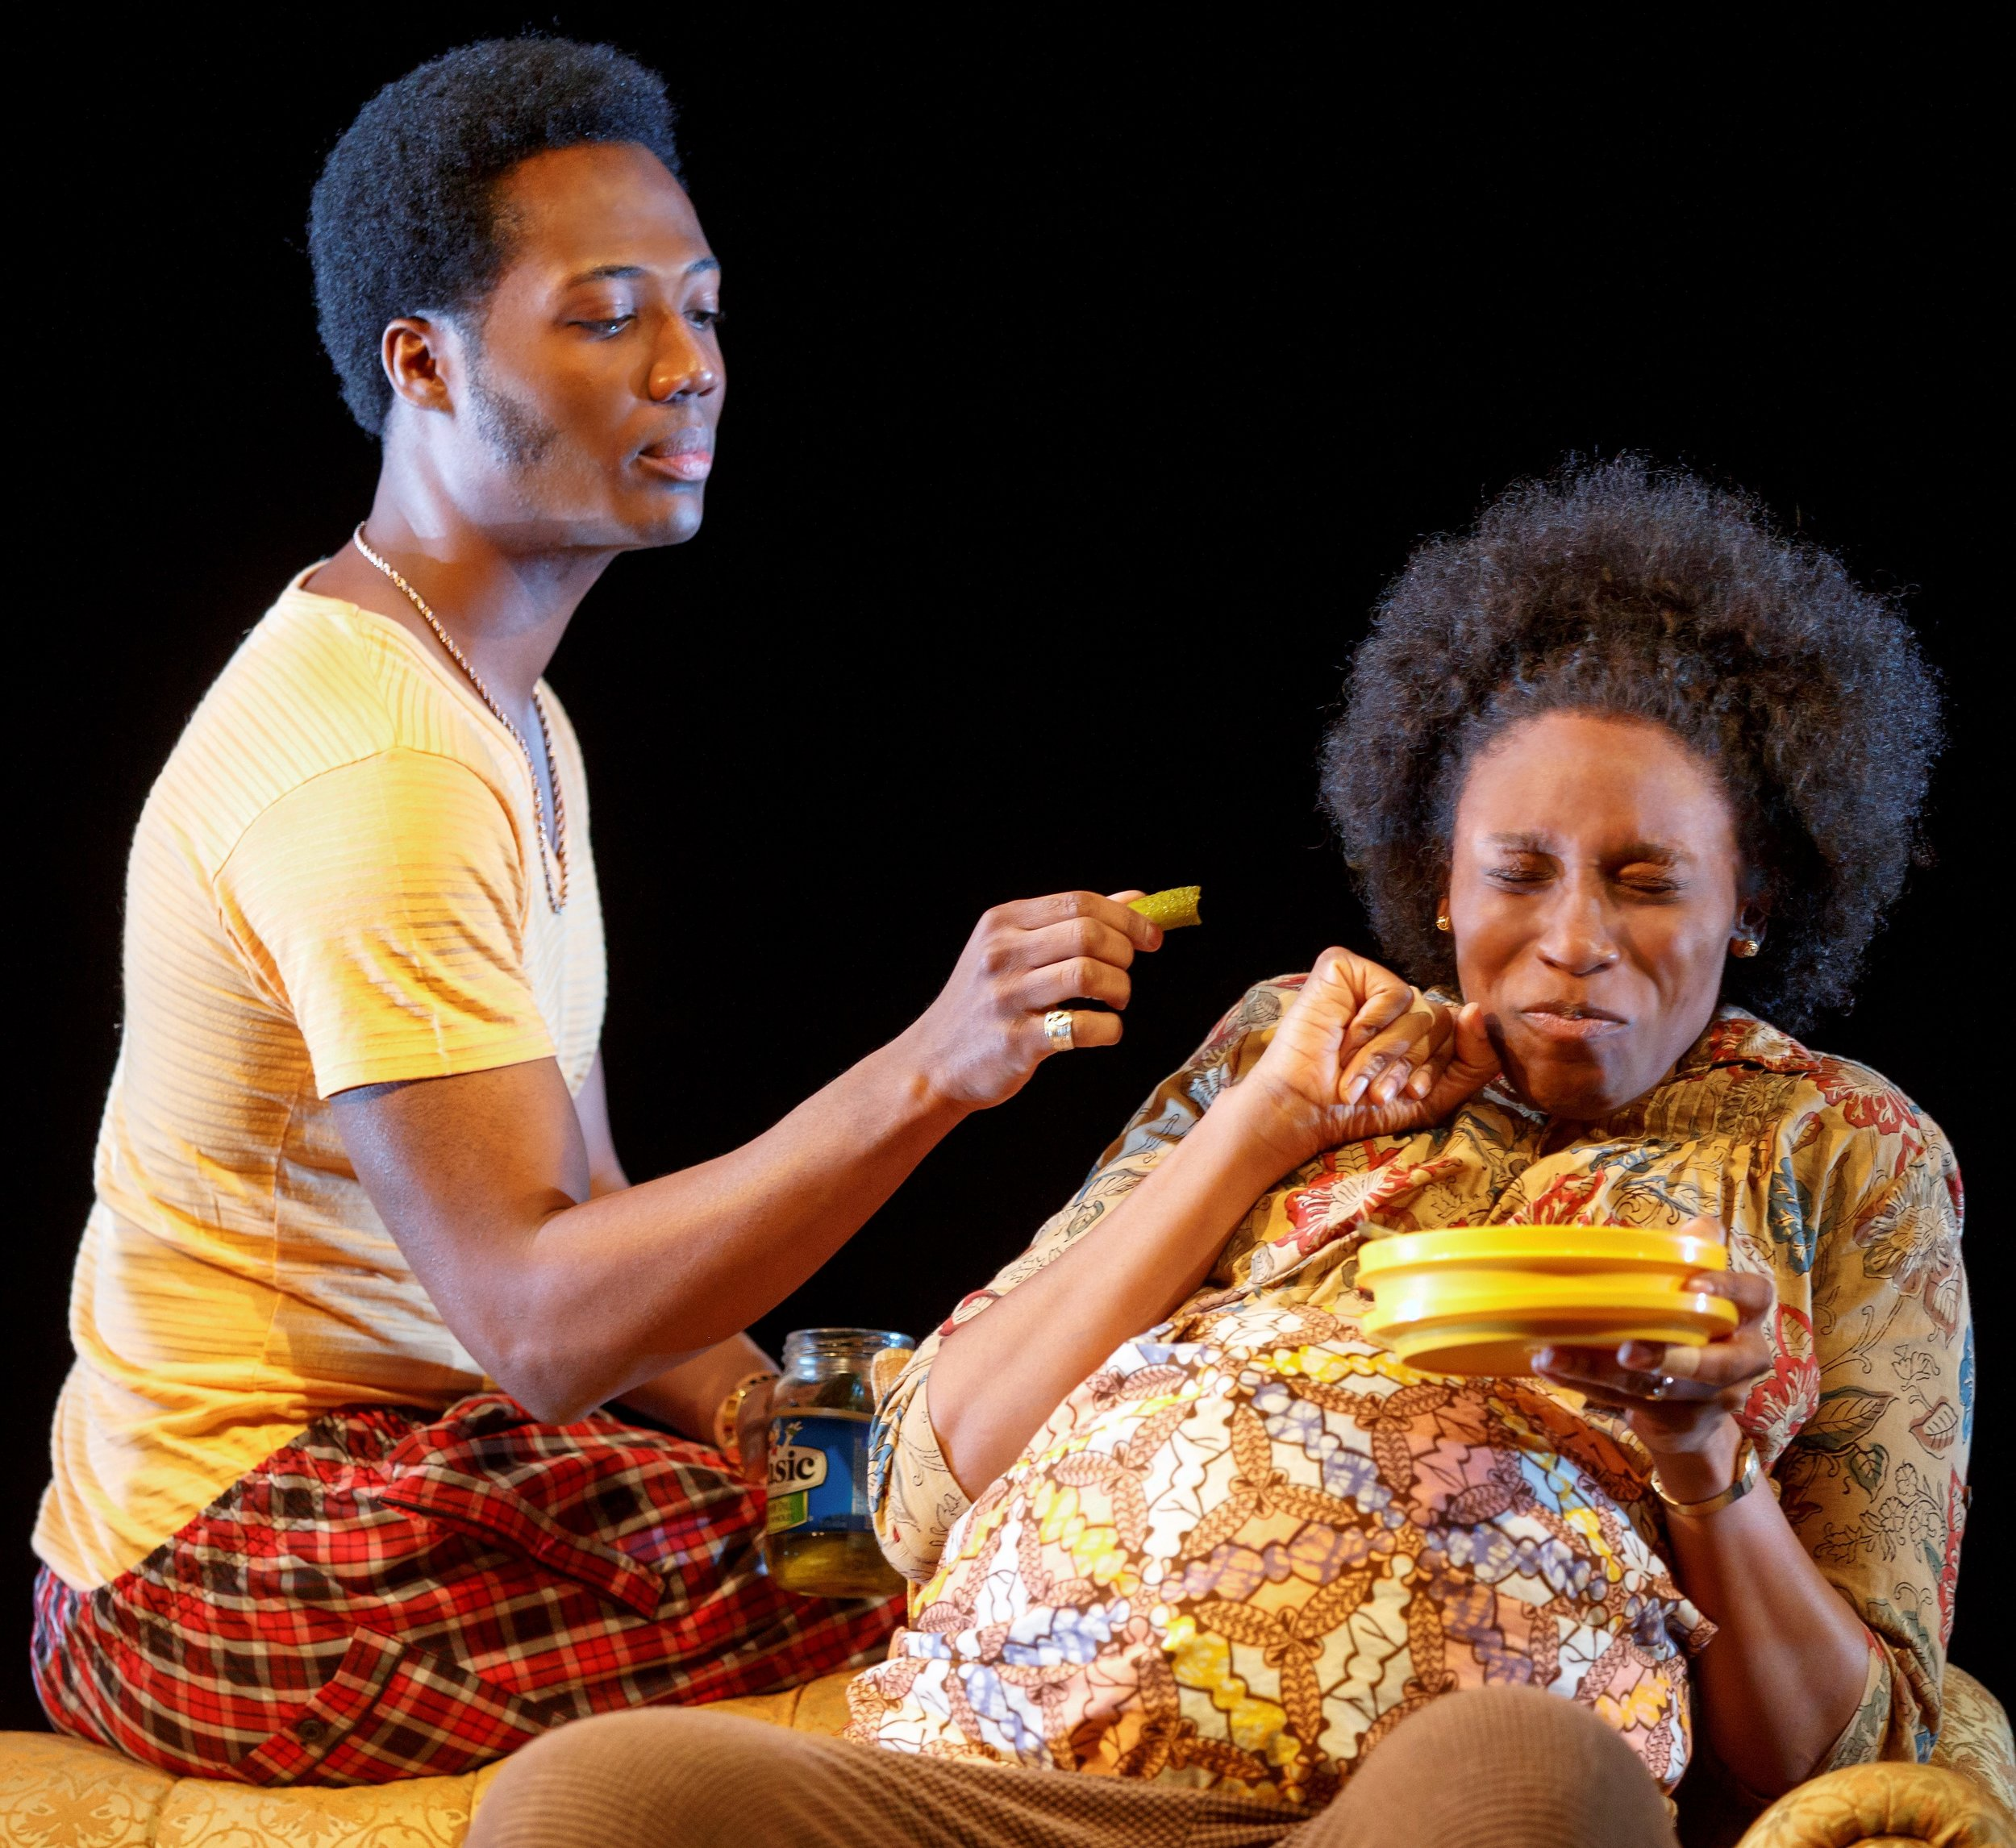 Ukpong (Hubert Point-Du Jour) and Ama (Chinasa Ogbuagu) in a playful moment in  Sojourners . Top: Prostitute Moxie (Lakisha Michelle May) and Disciple Ufot (Chinaza Uche) at Ama's bedside in  Sojourners .